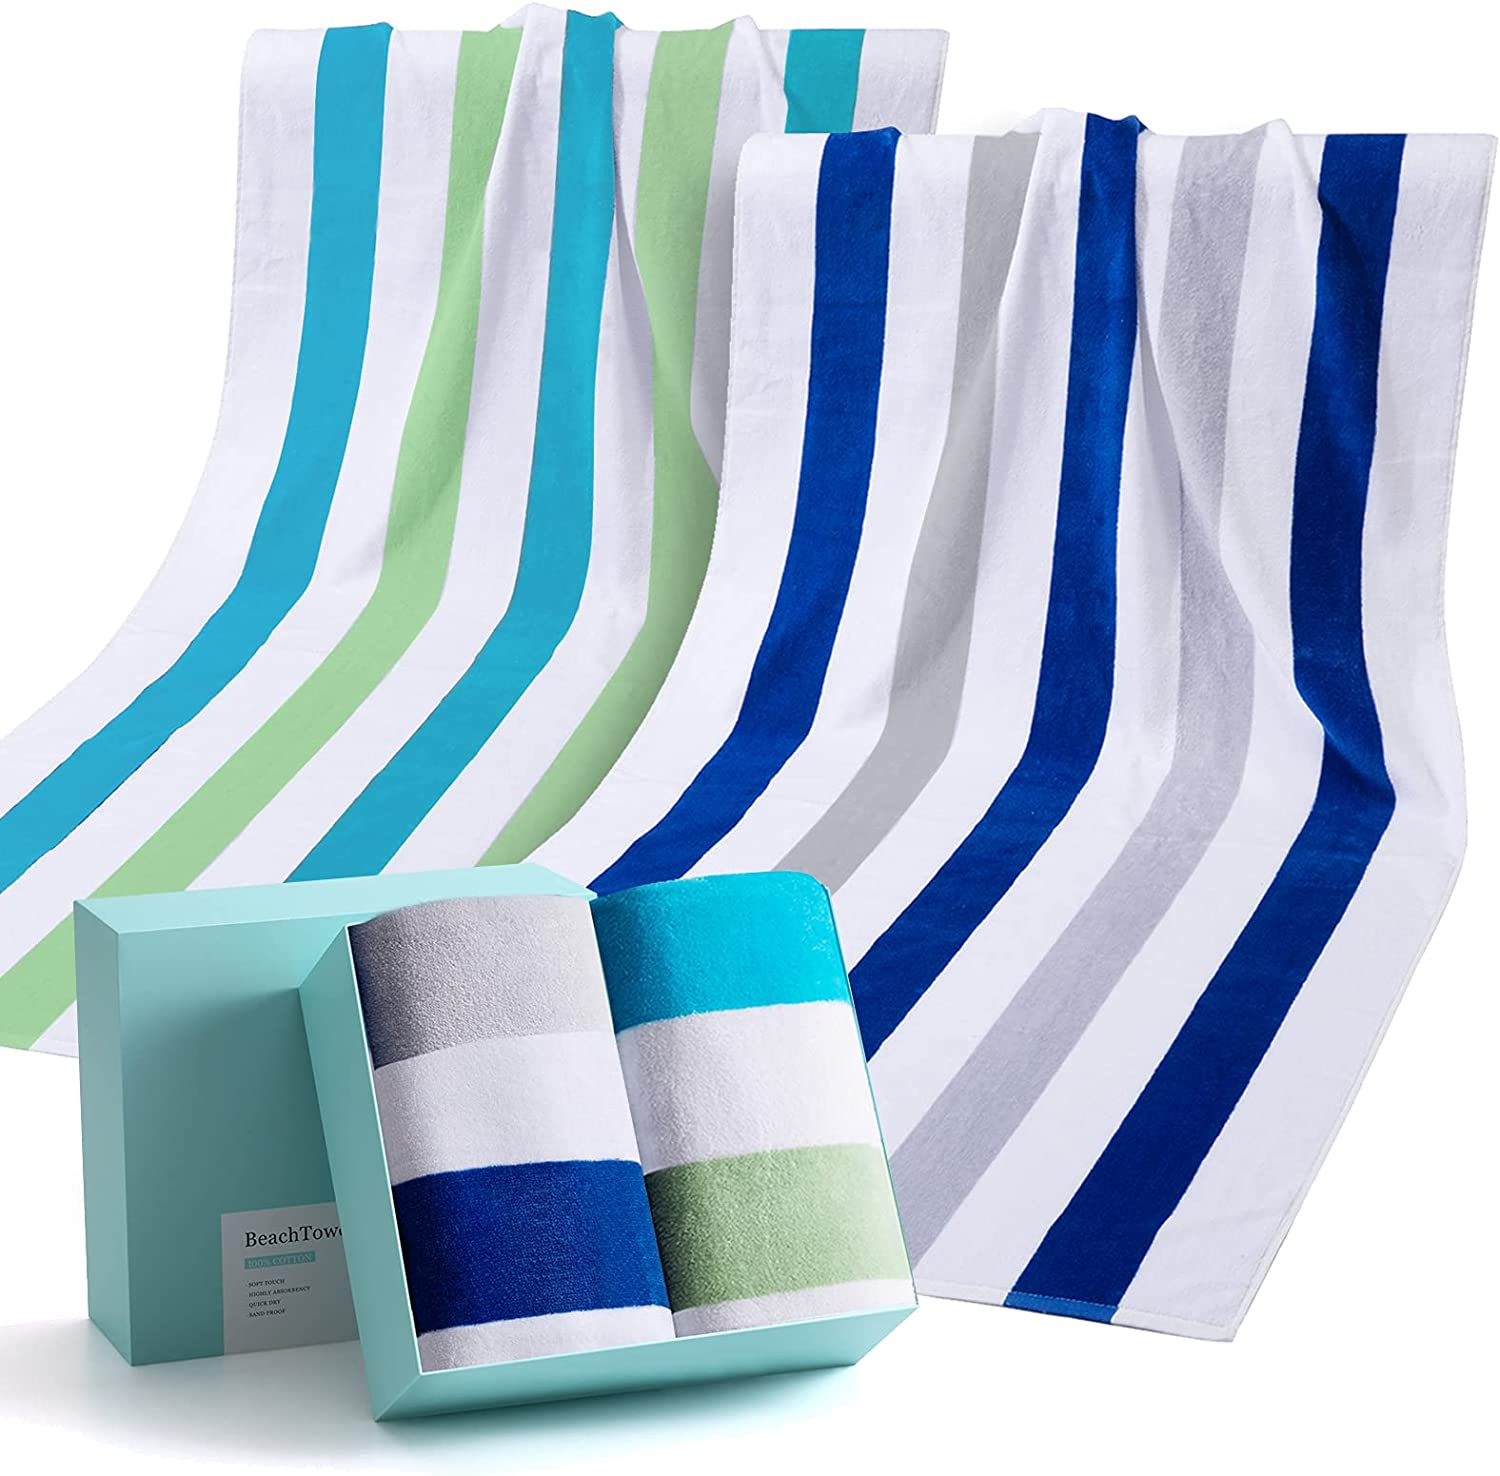 Large Beach Towel,100% Cotton Pool Towel and Colorful Beach Stripes Soft and Quick Dry Swim Towels Variety Pack with Gift Box(2 Pack)